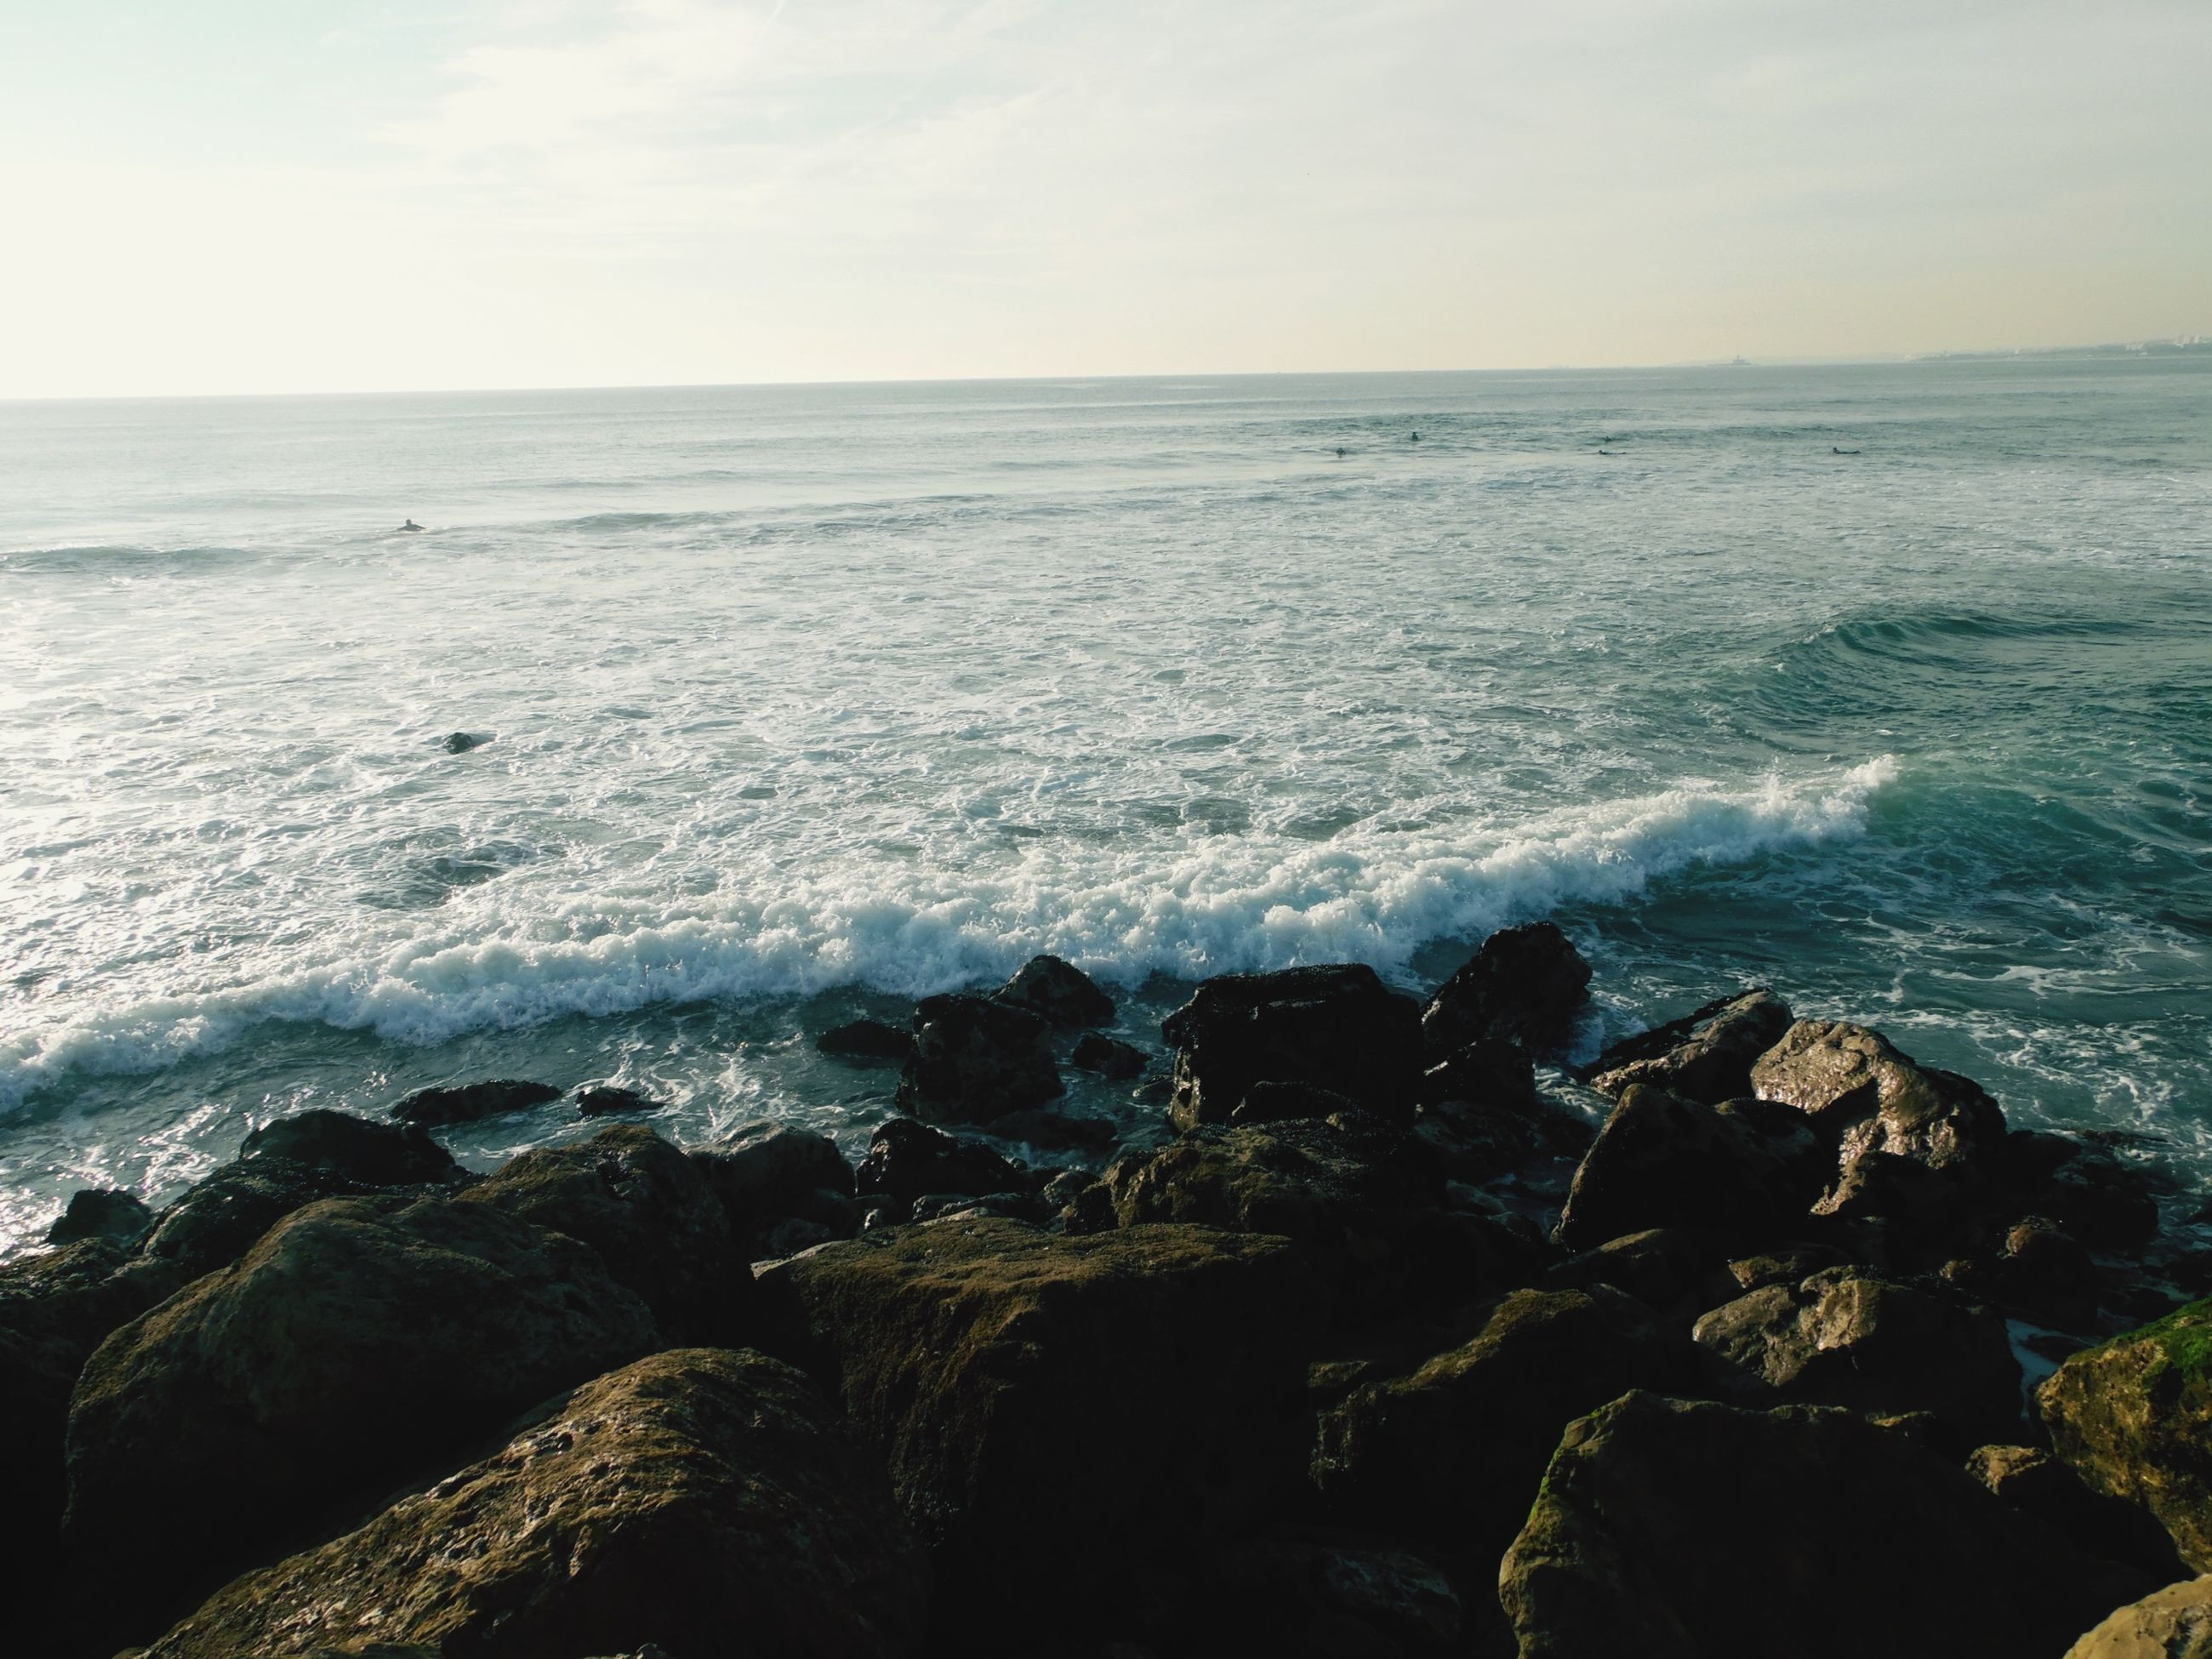 sea, horizon over water, water, scenics, beauty in nature, wave, tranquil scene, sky, tranquility, nature, rock - object, beach, shore, surf, idyllic, seascape, rock formation, coastline, cliff, outdoors